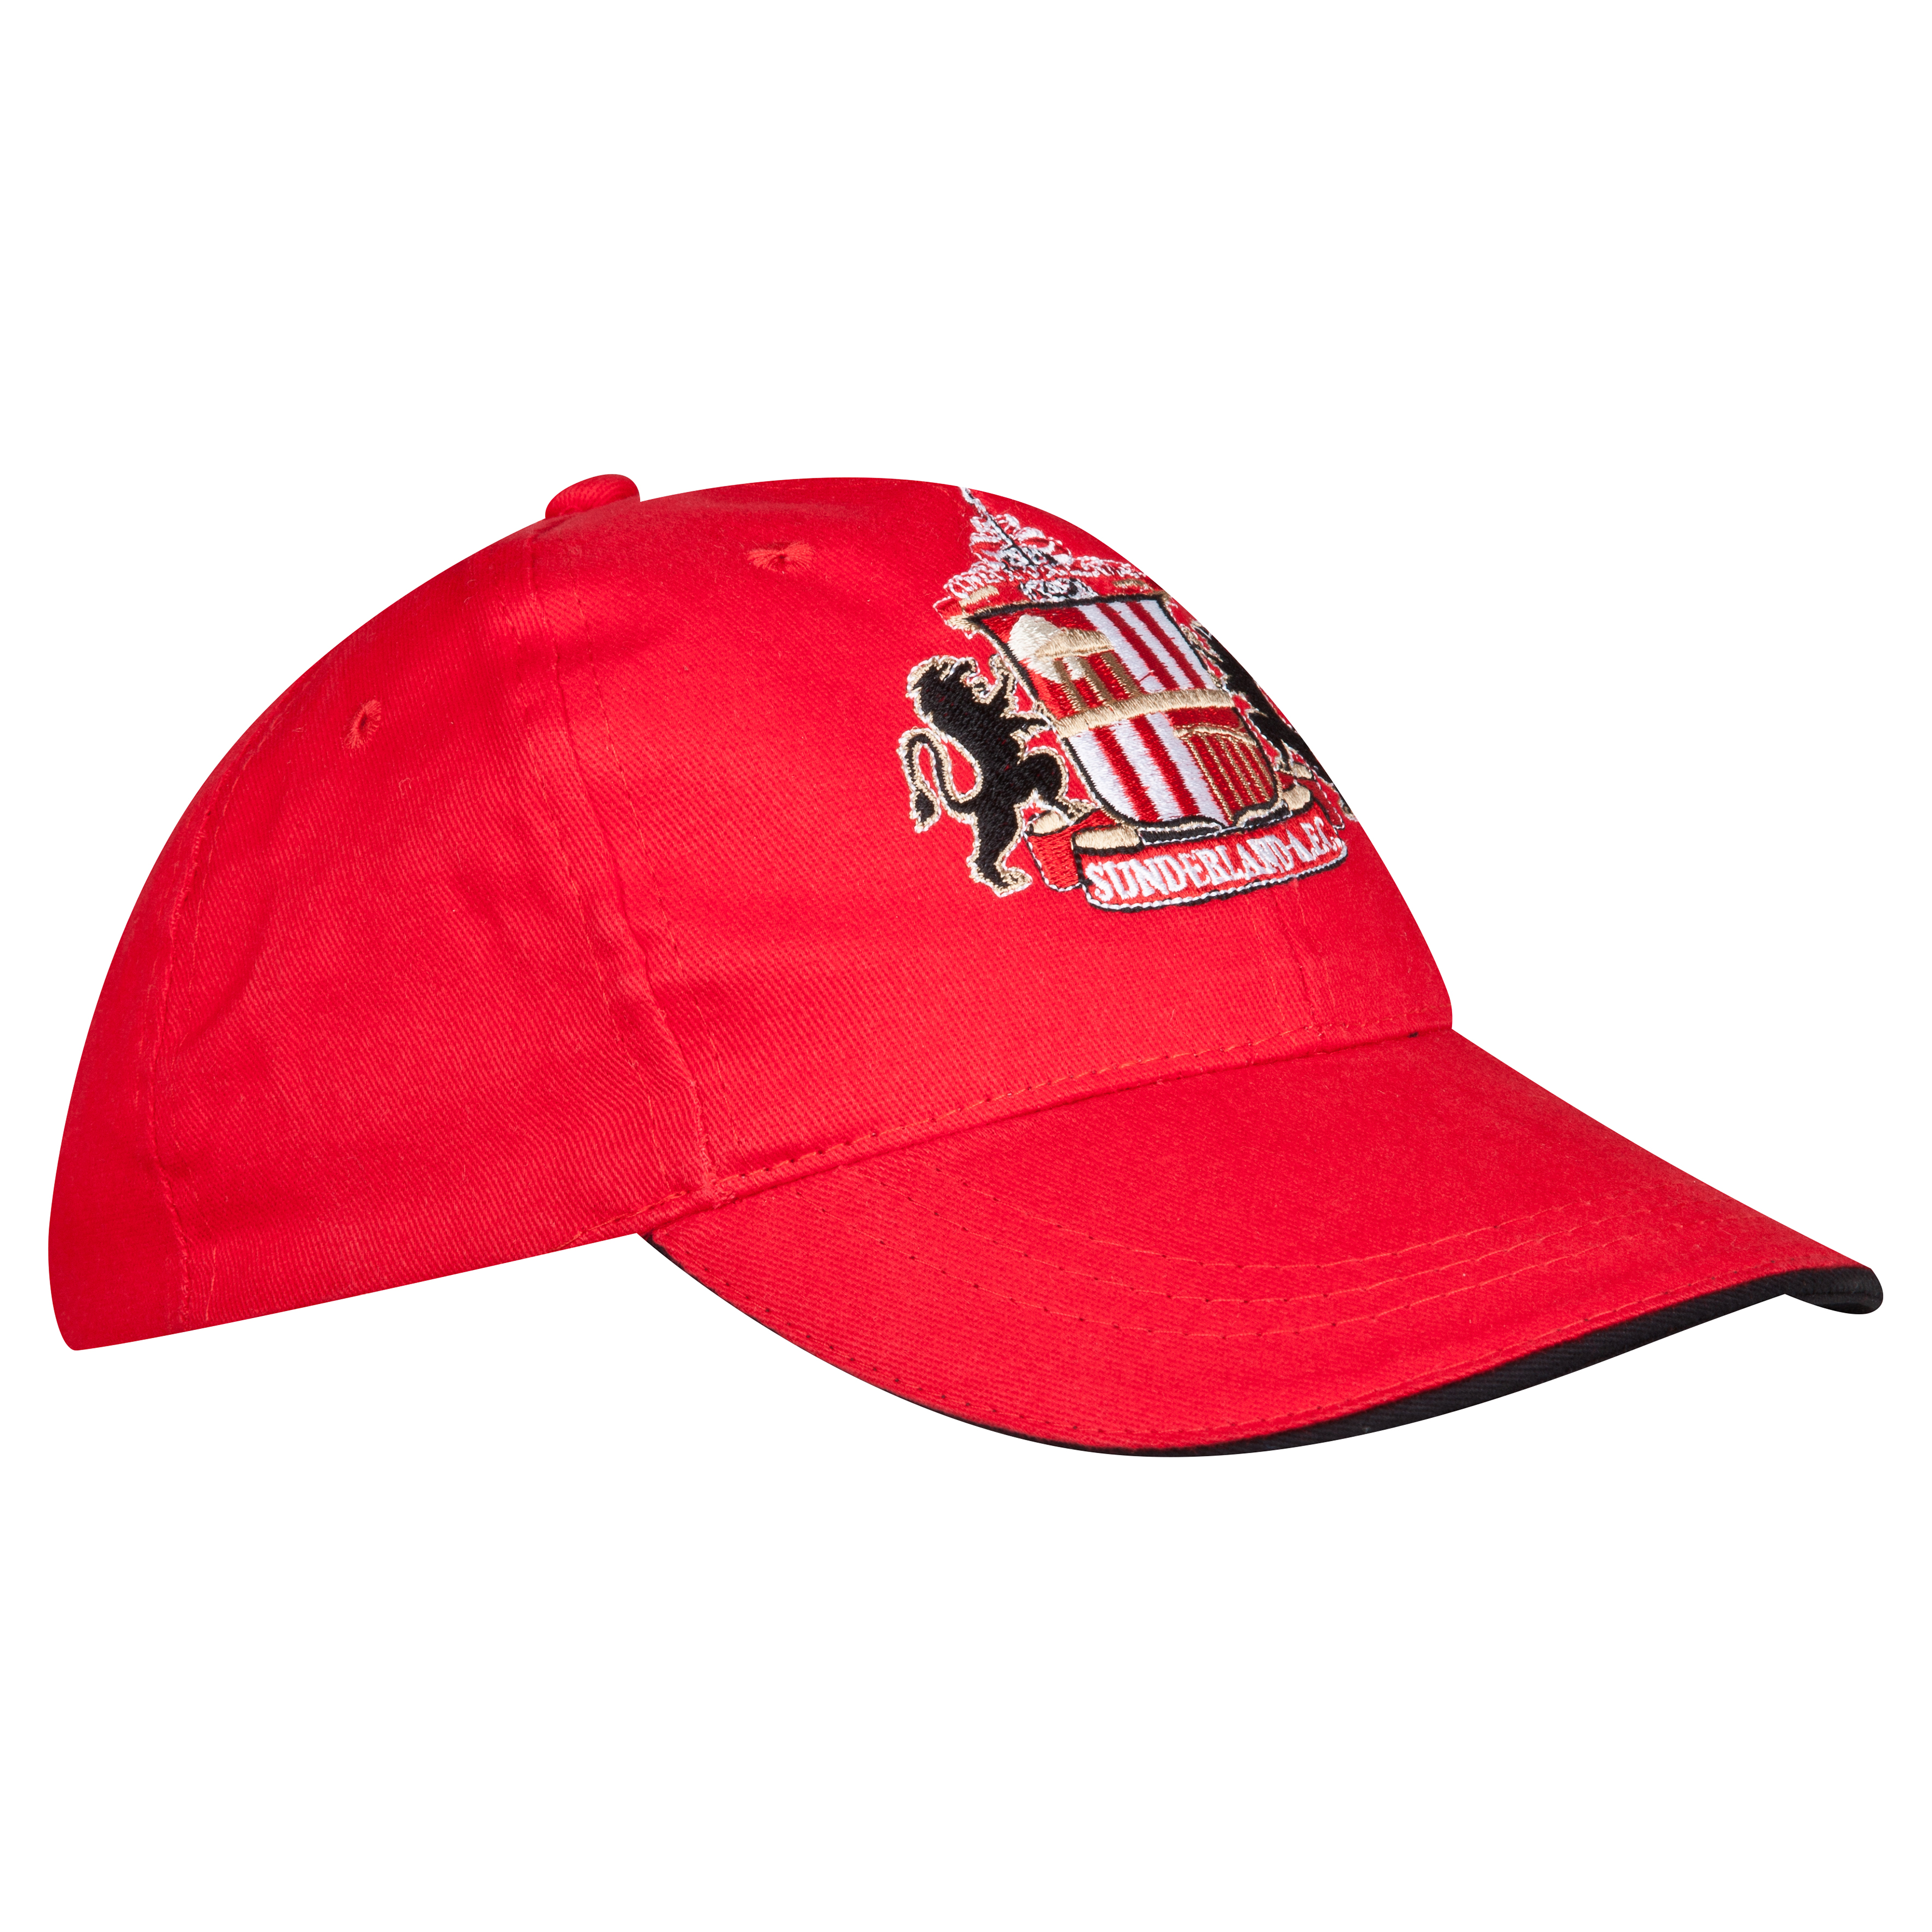 Sunderland Core Cap - Red